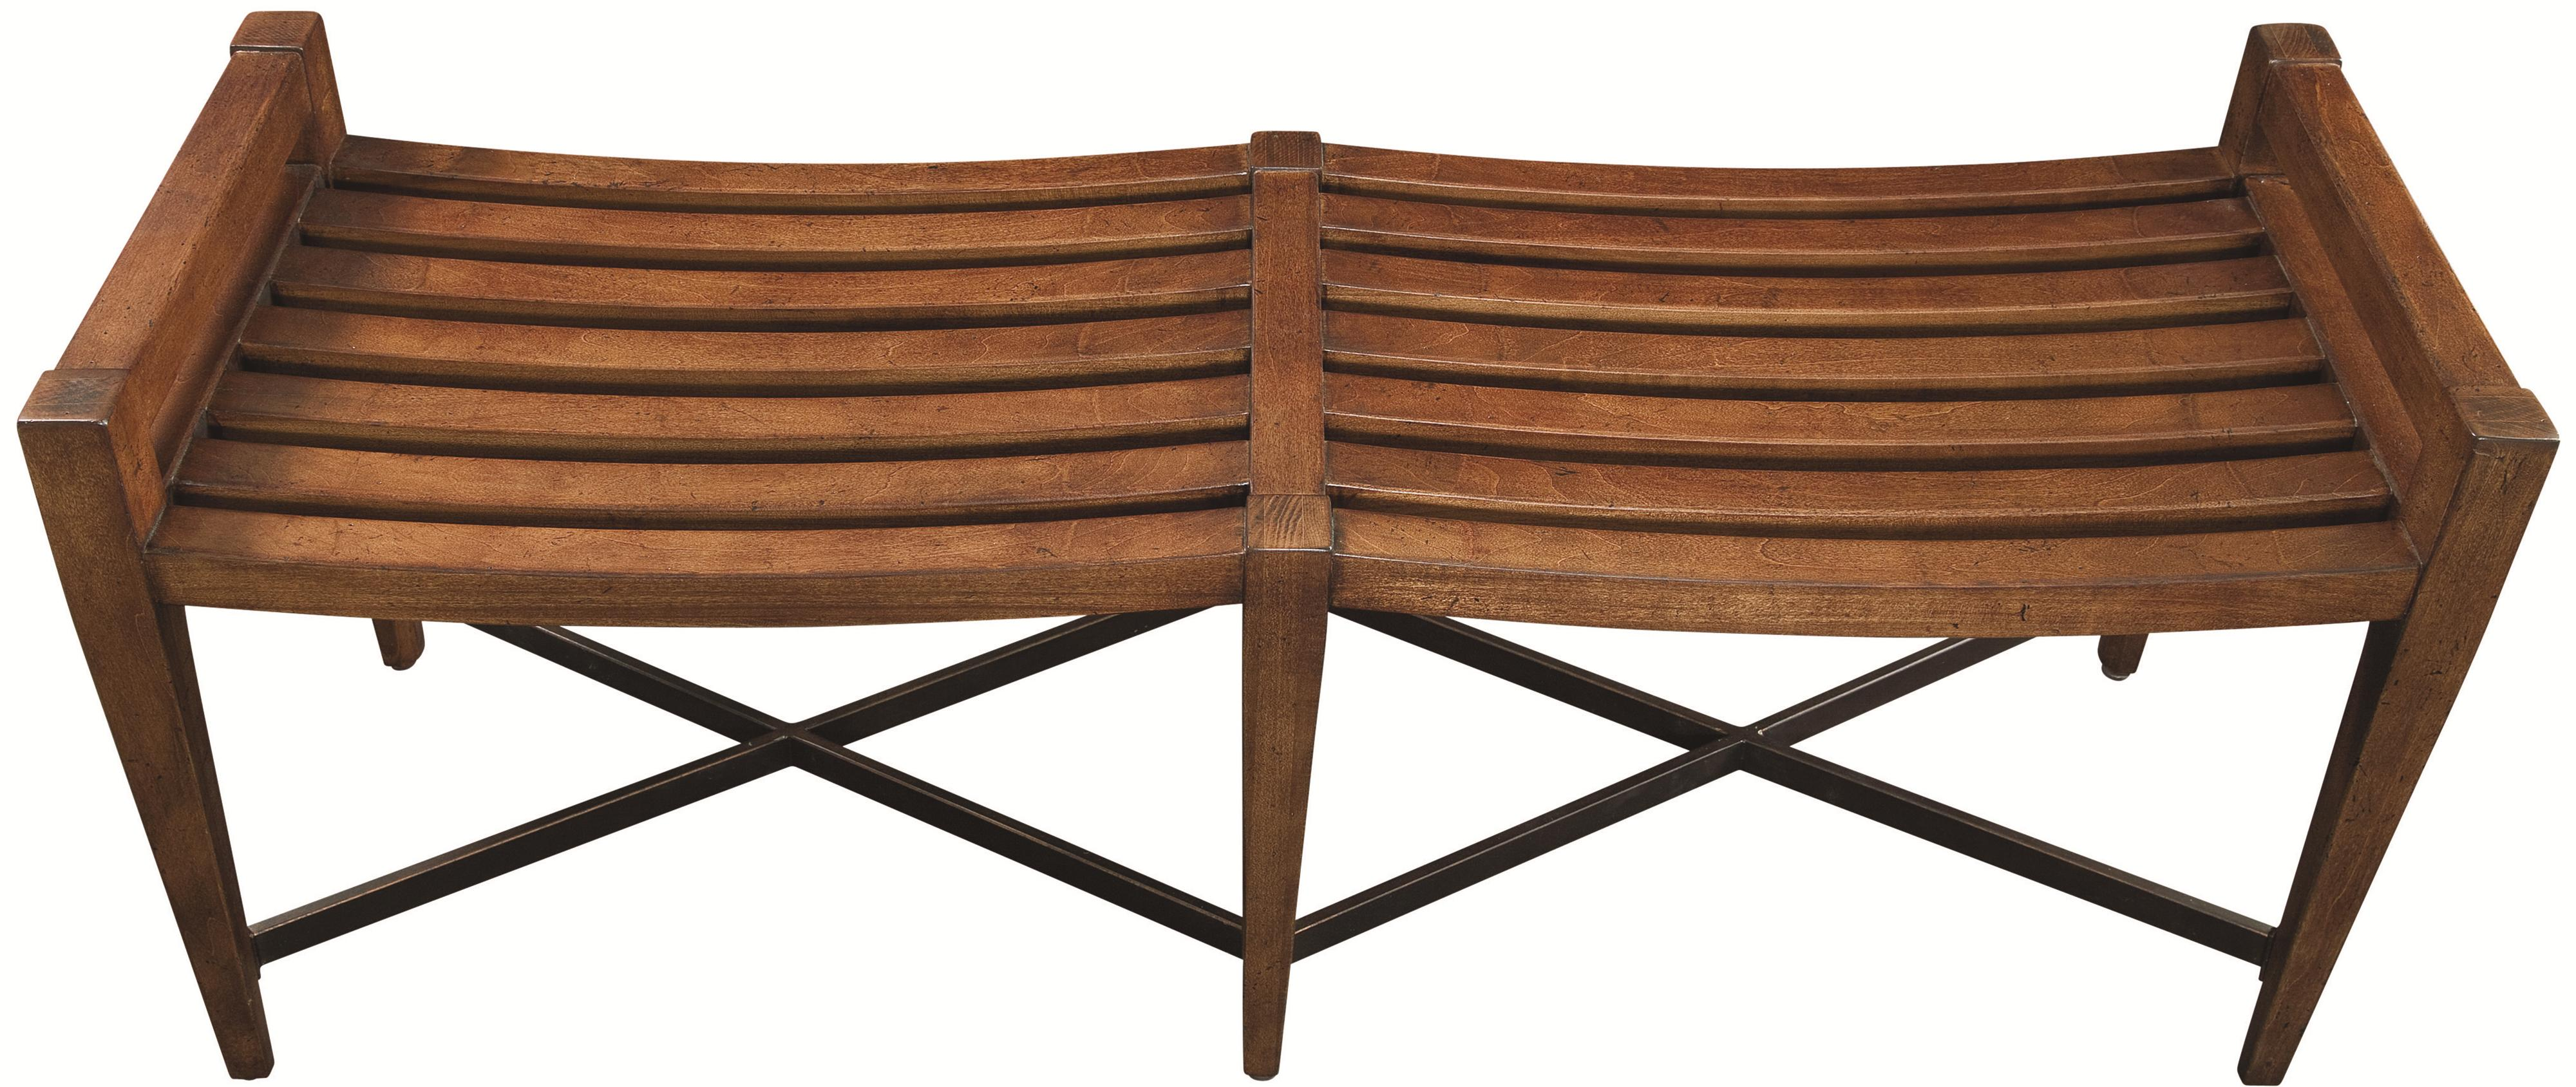 Thomasville® American Anthem Bed Bench - Item Number: 82811-906